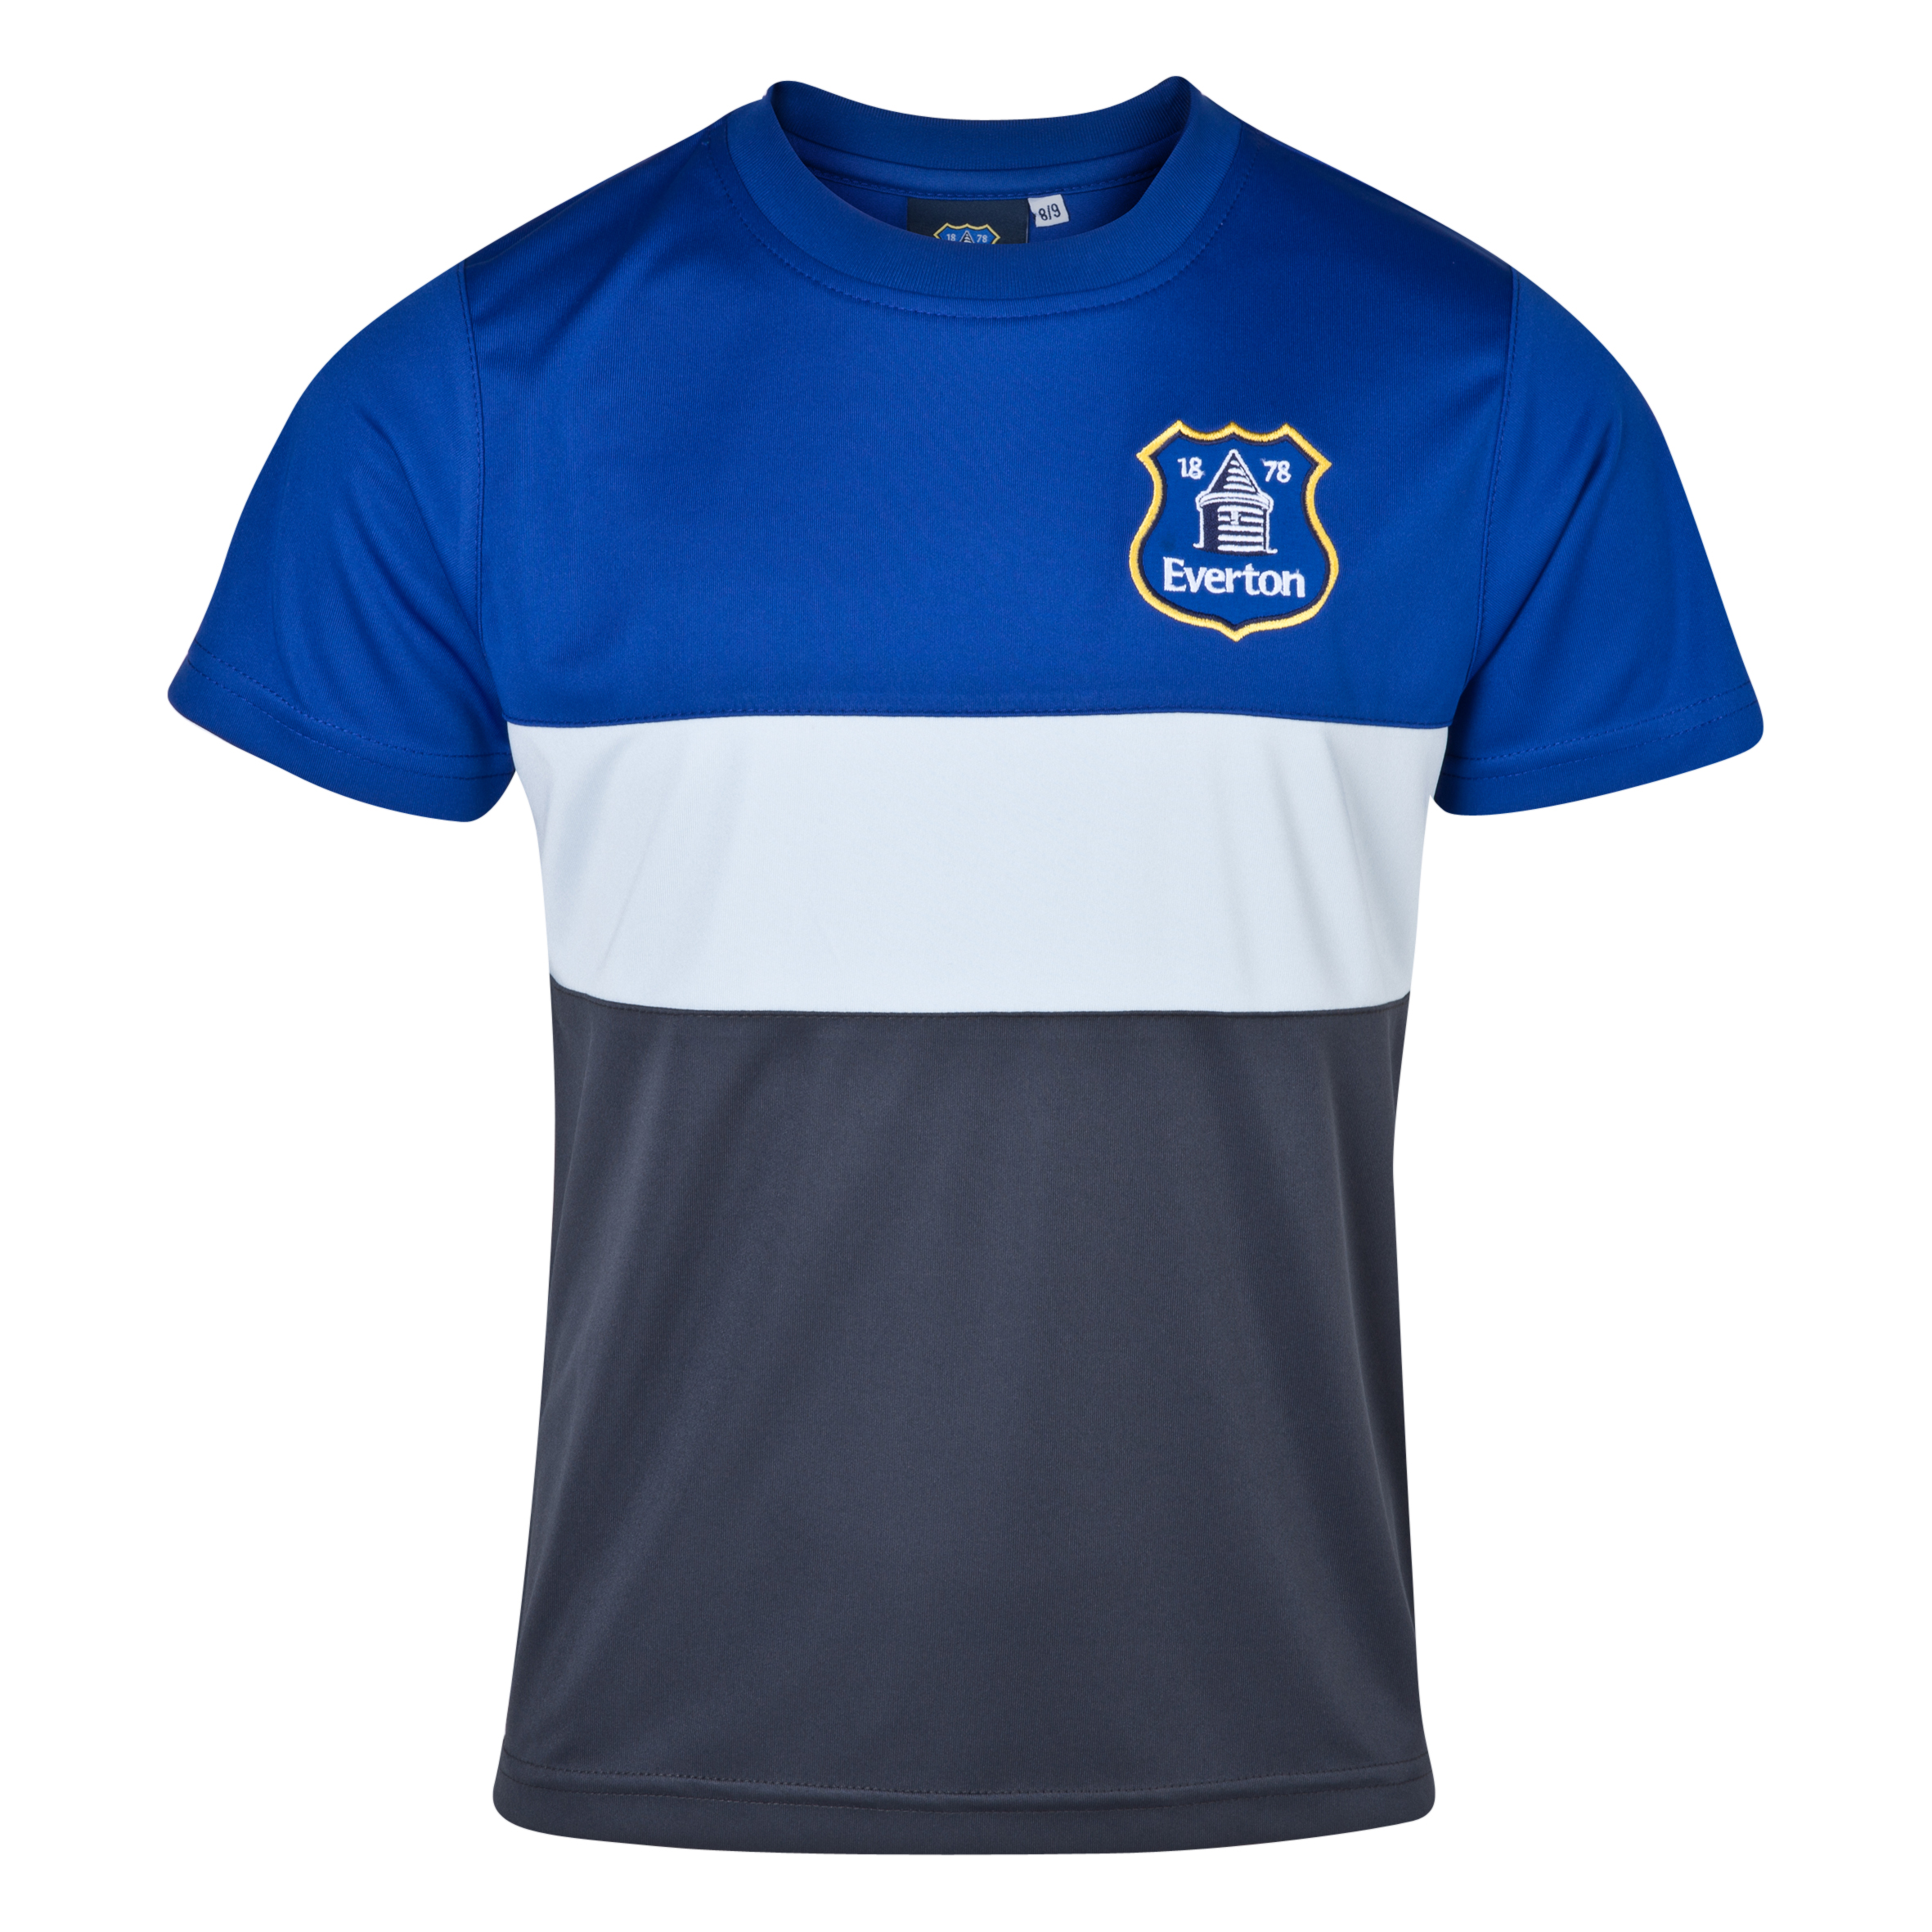 Everton Essentials Blocks T-Shirt - Older Boys Royal Blue